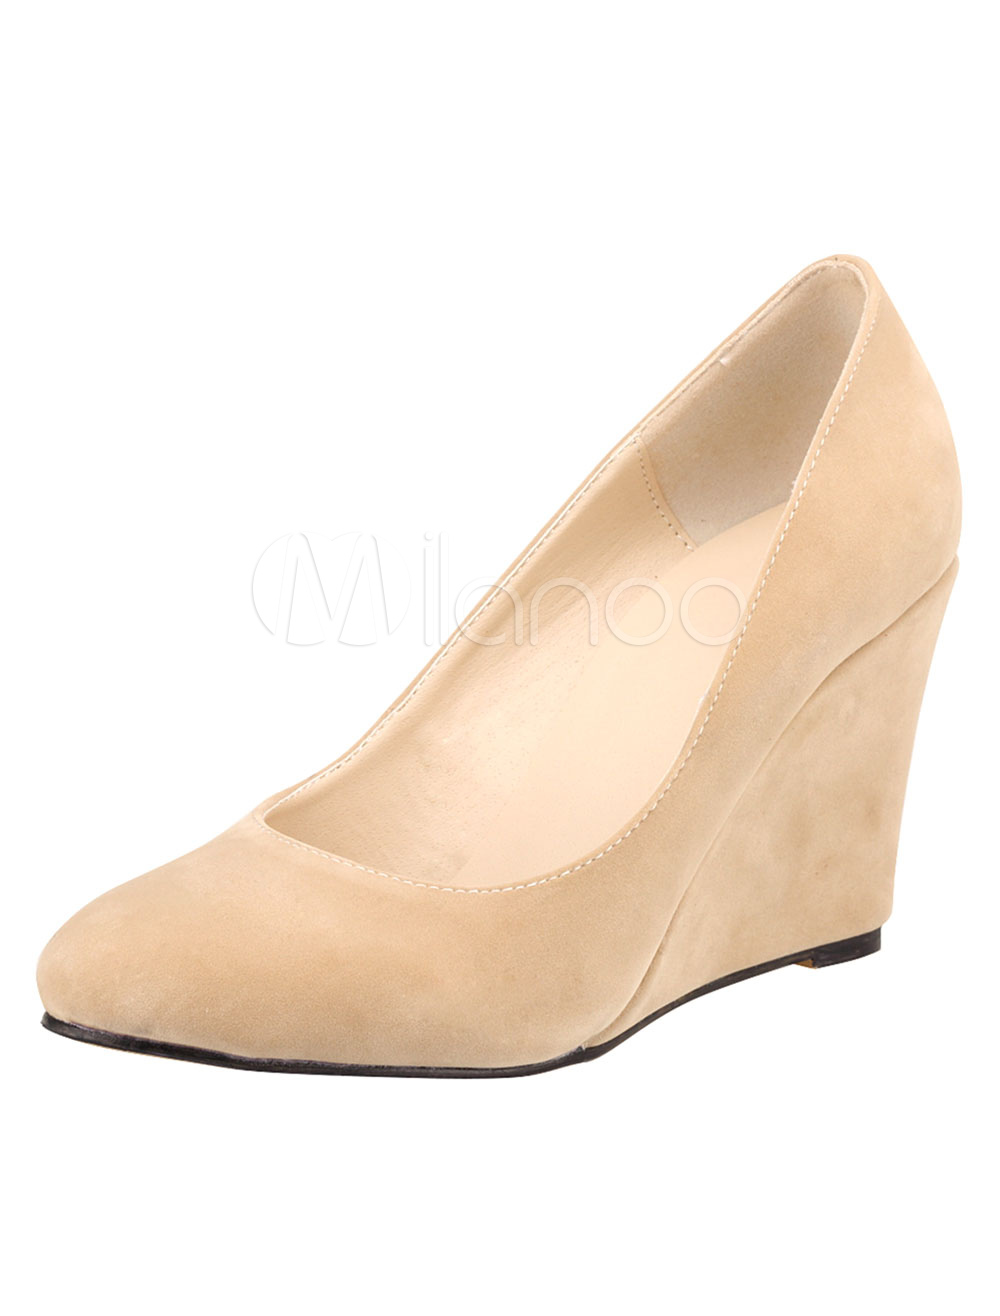 Suede Wedge Pumps Round Toe Slip On Shoes For Women